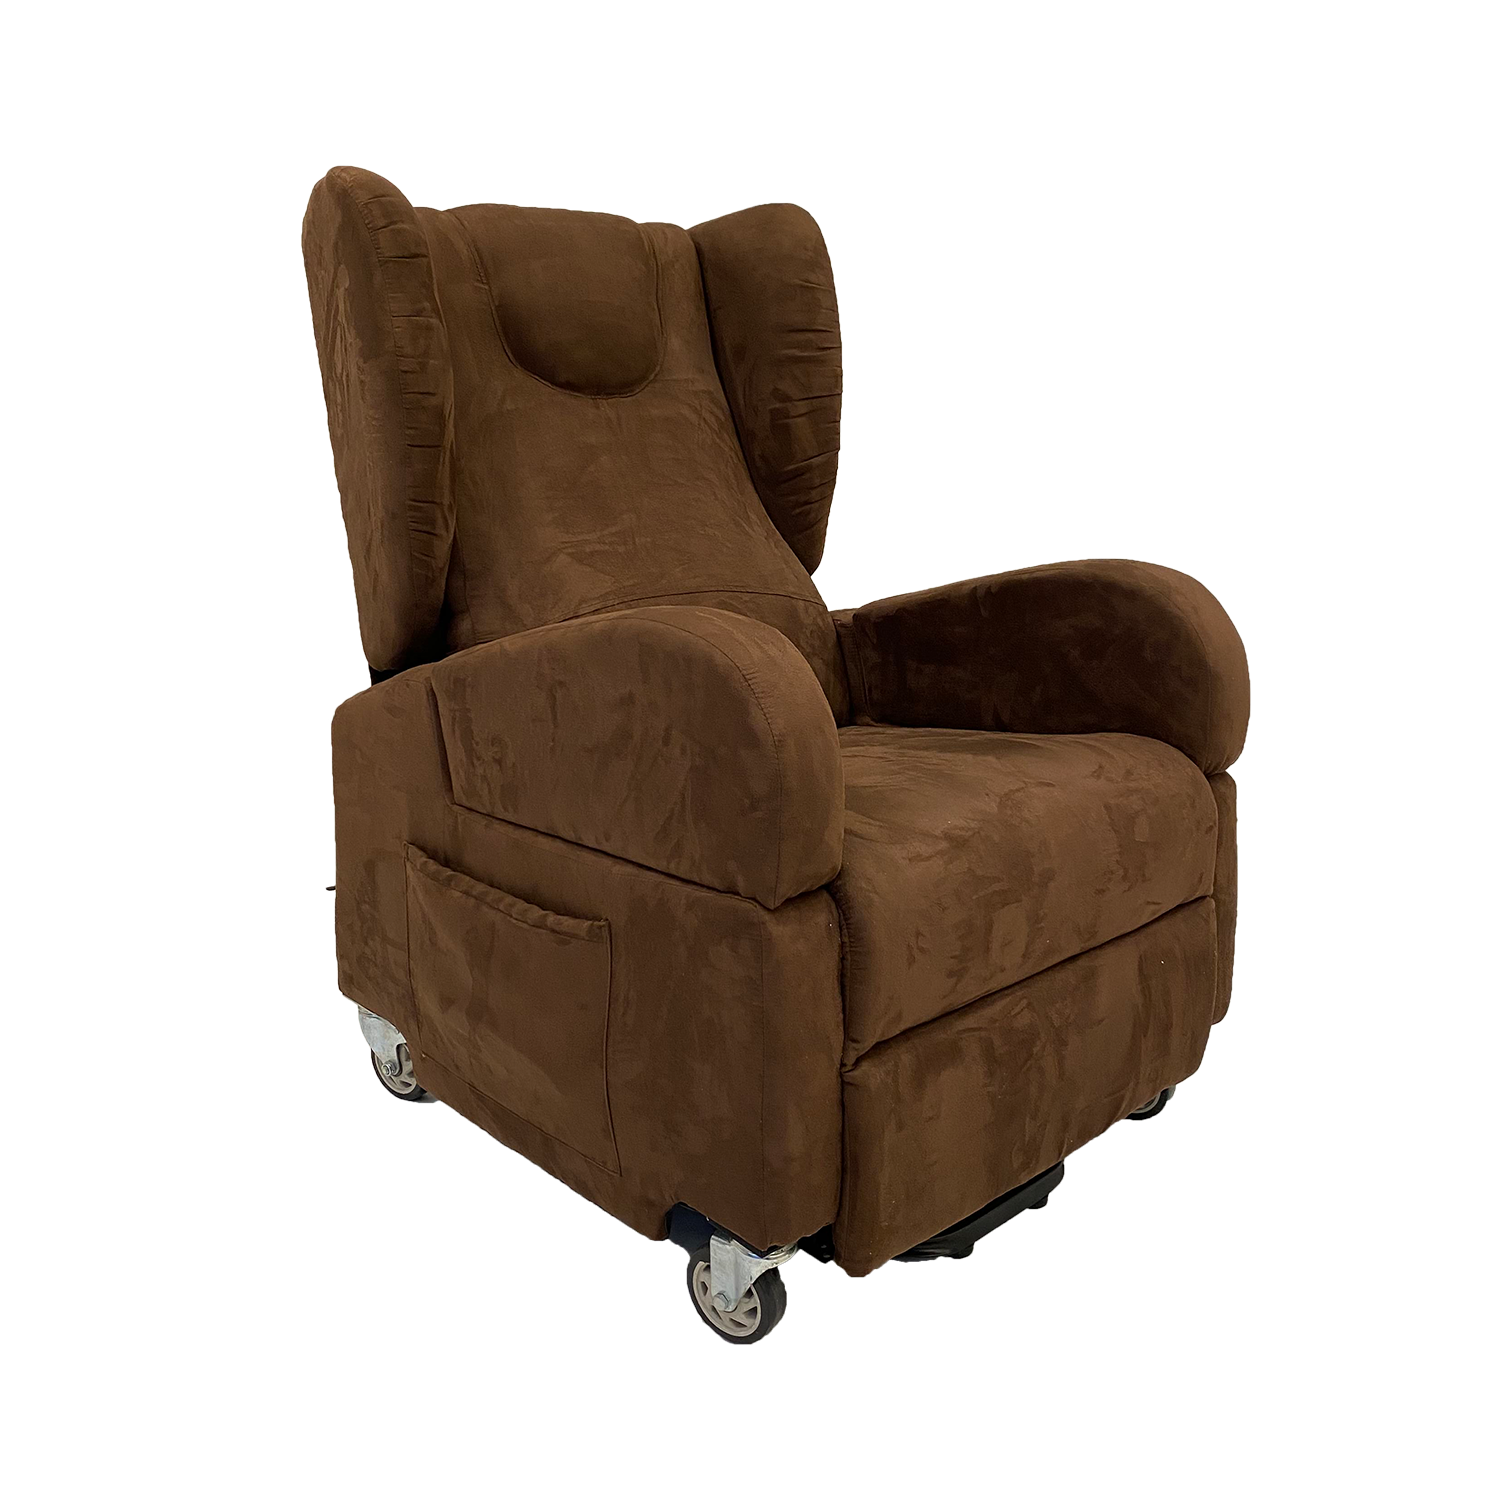 MOTORISED WHEELCHAIR LIFTER RECLINER (LRE 33)